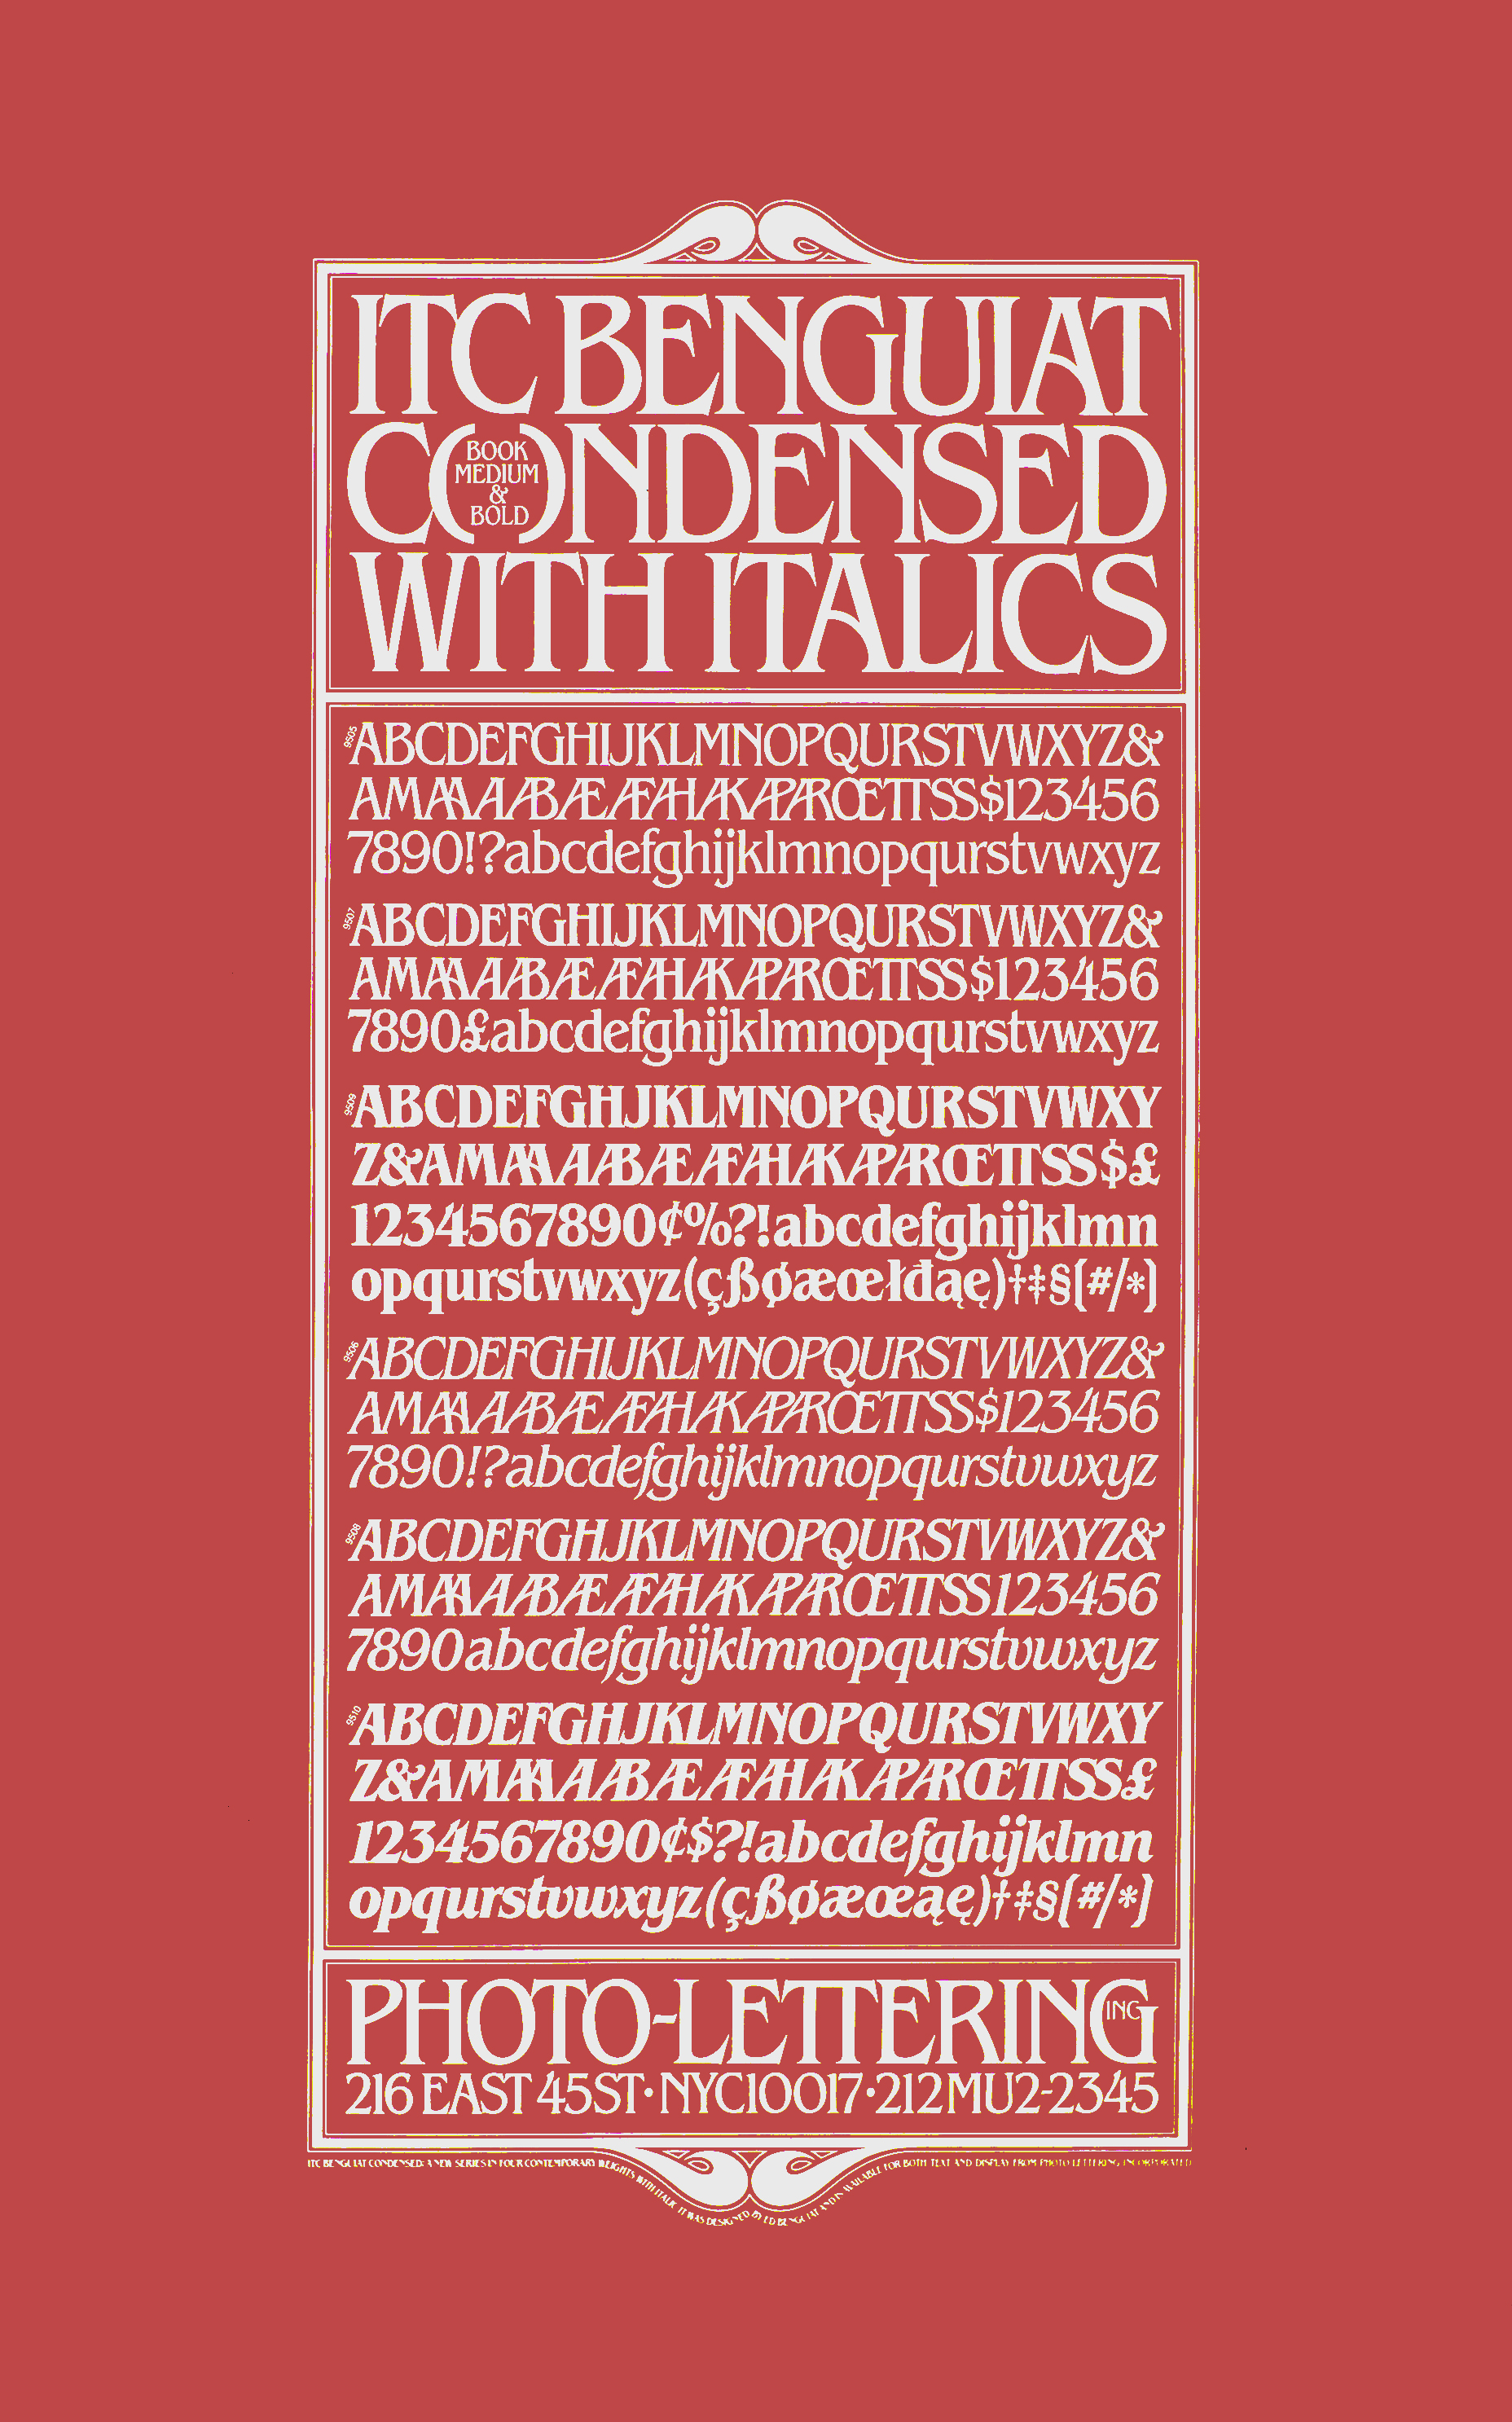 Glossary of ITC Benguiat characters in an ornate box; white against red background.